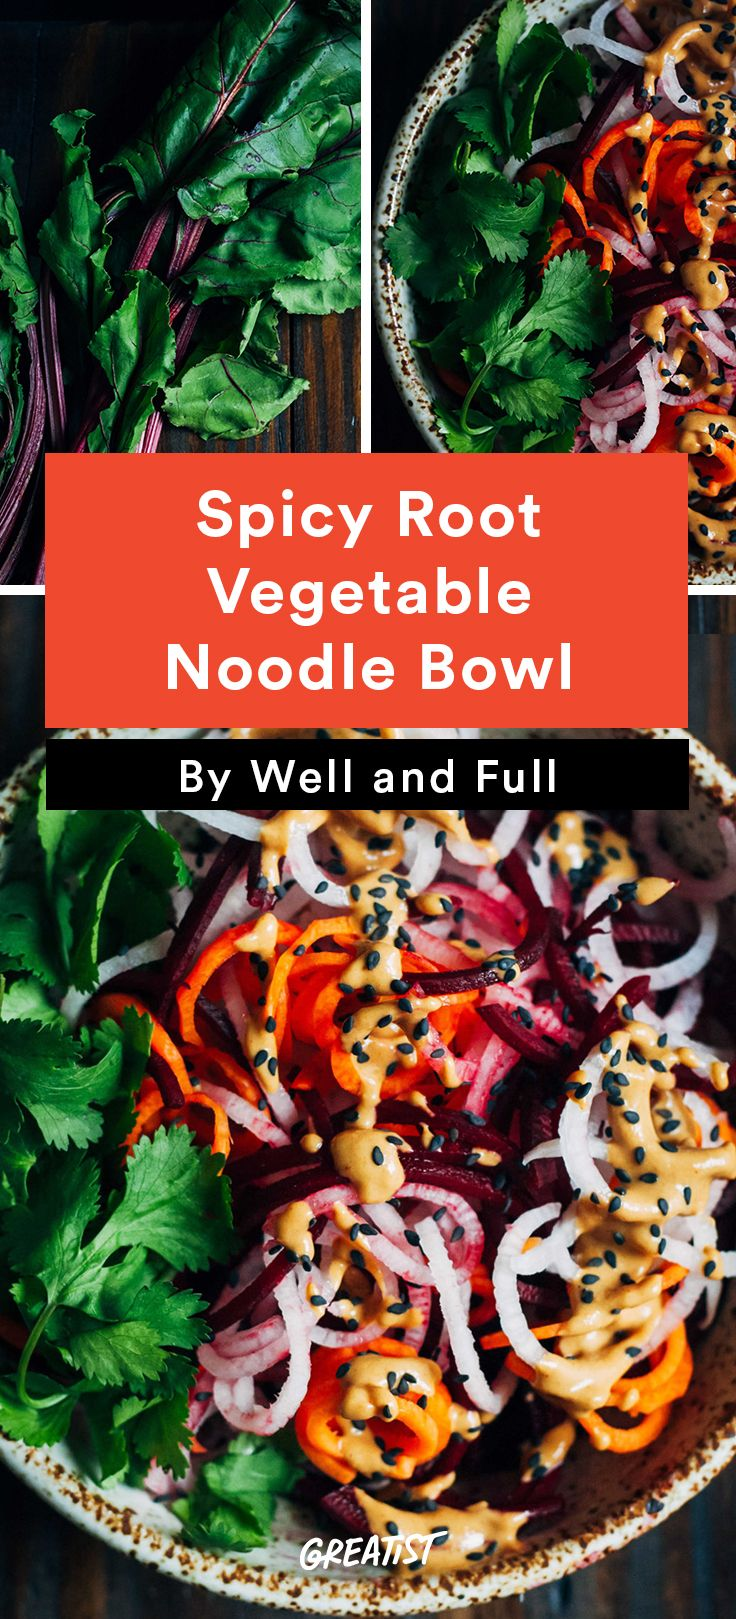 2. Spicy Root Vegetable Noodle Bowl #greatist http://greatist.com/eat/radish-recipes